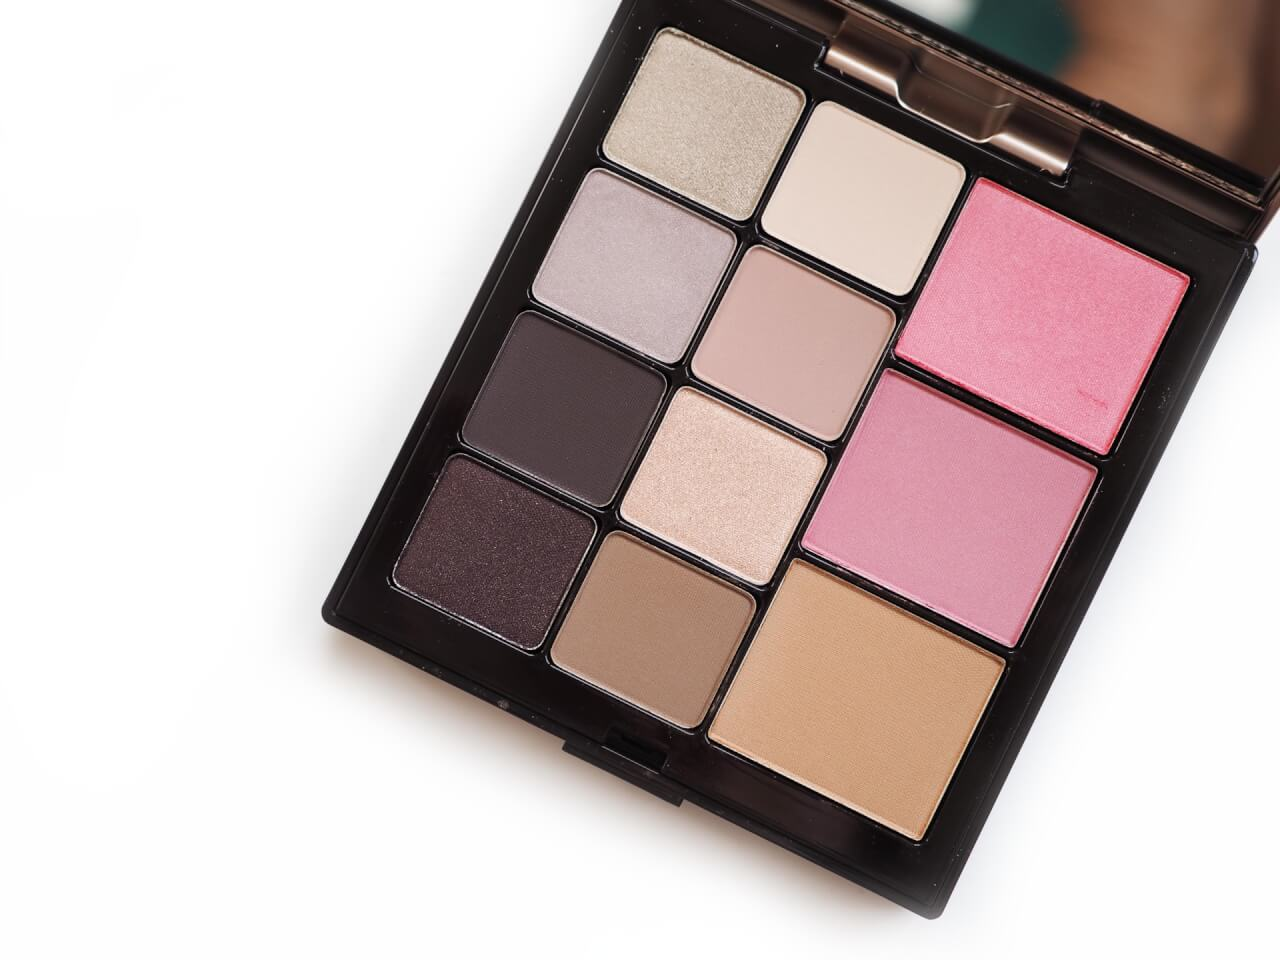 Laura Mercier Essentials Eye & Cheek Palette